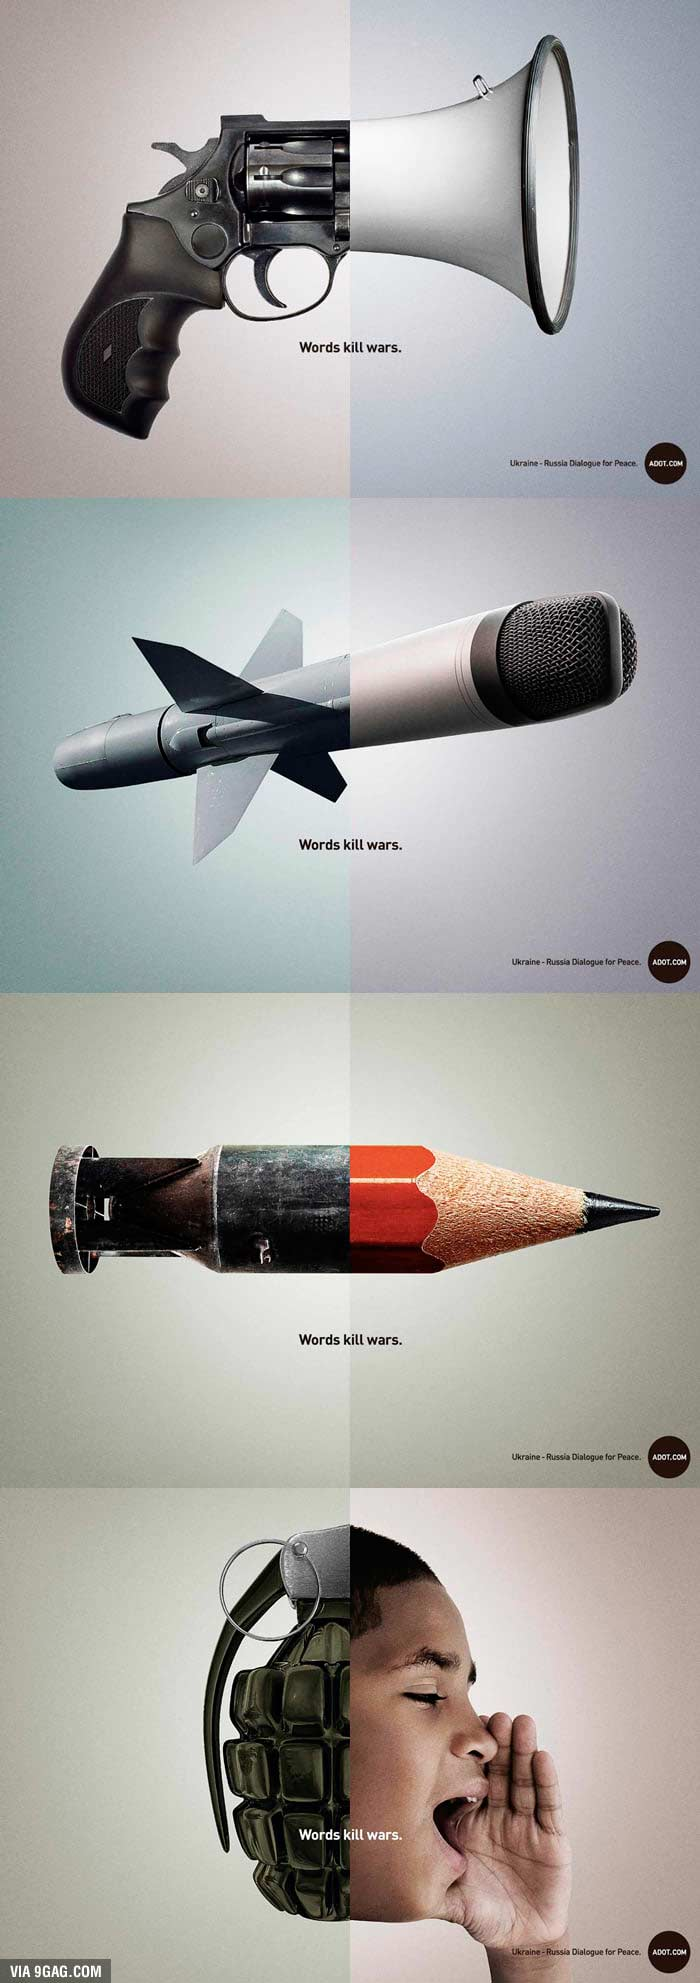 words kill wars social advertising